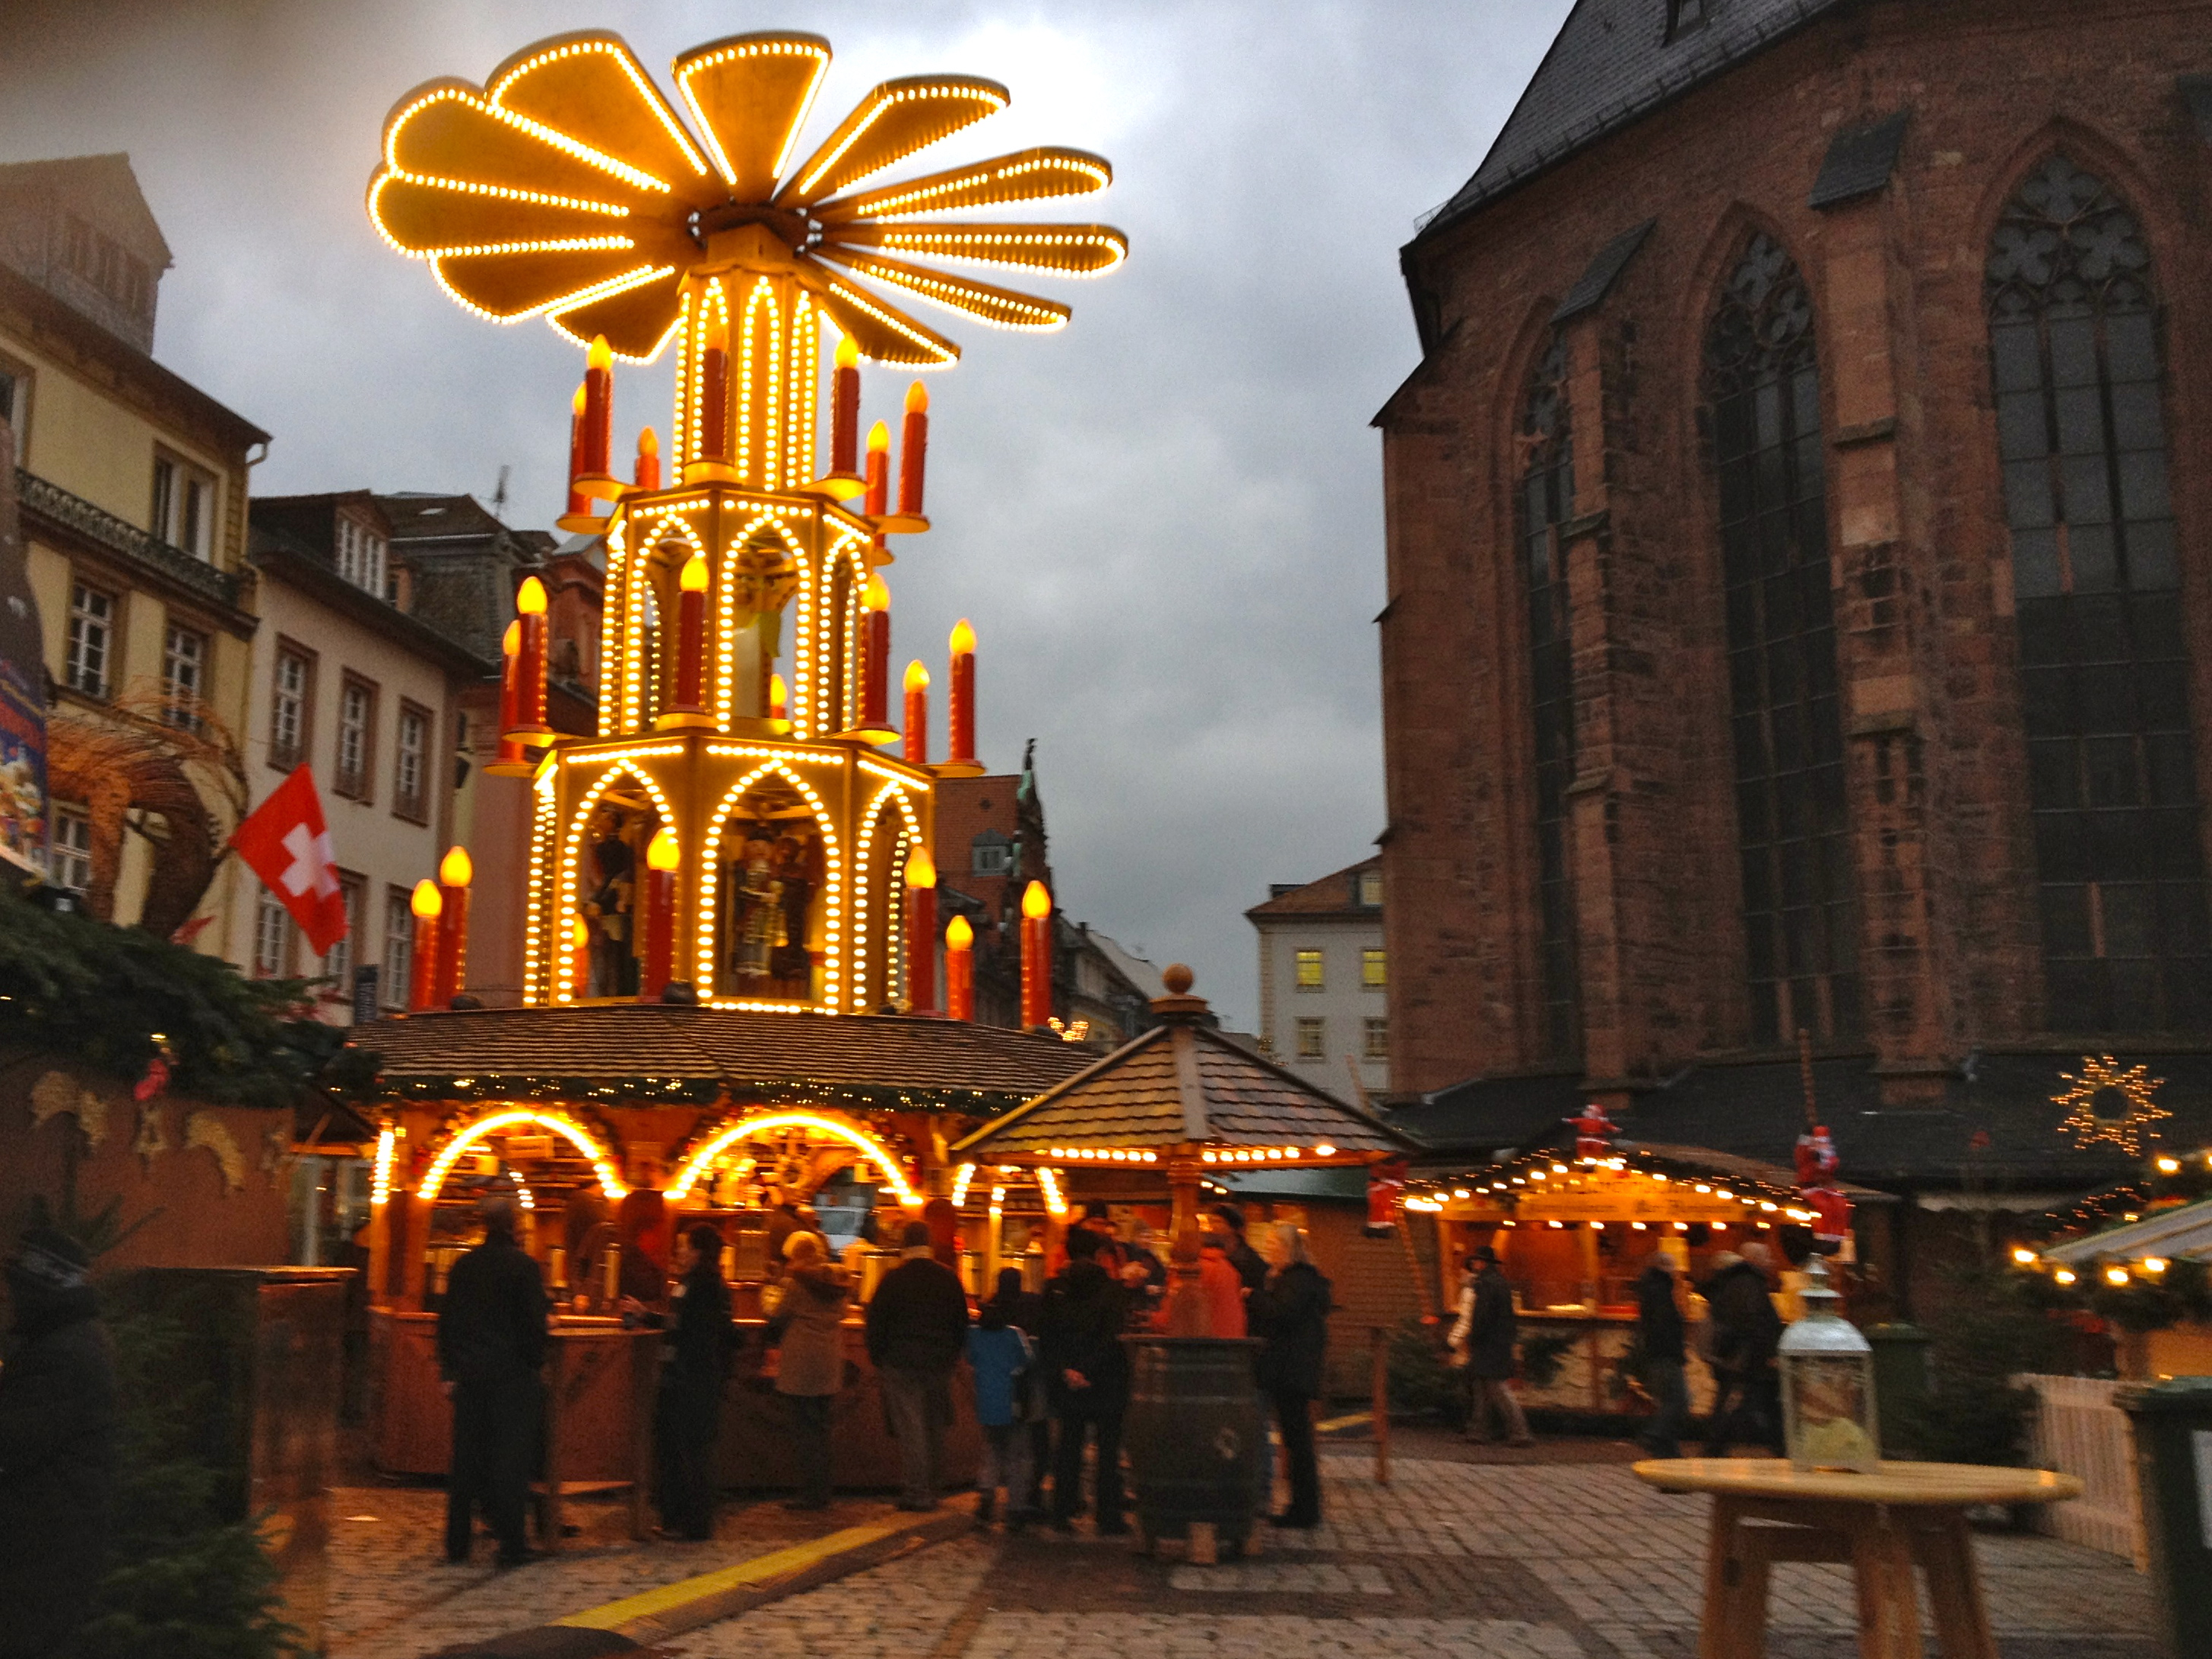 heidelbergs market winds through medieval streets and features a giant christmas pyramid